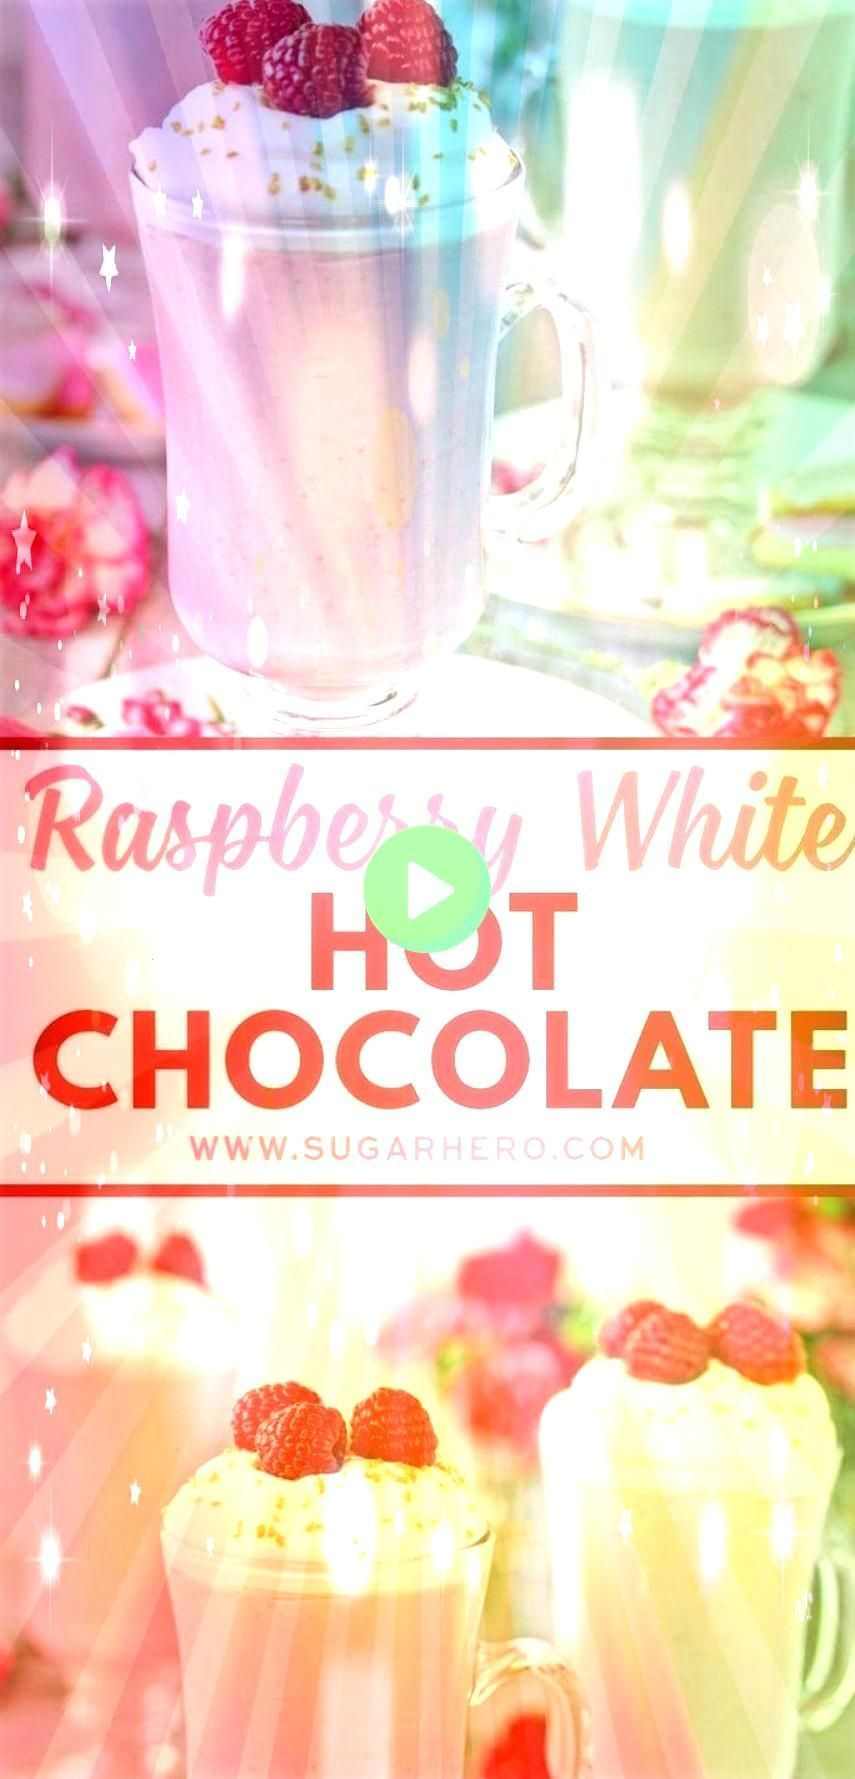 is a pretty pink twist on traditional hot chocolate Its made with white chocolate and real raspberry puree for a fresh fruity taste that is perfect yearround  From Raspbe...